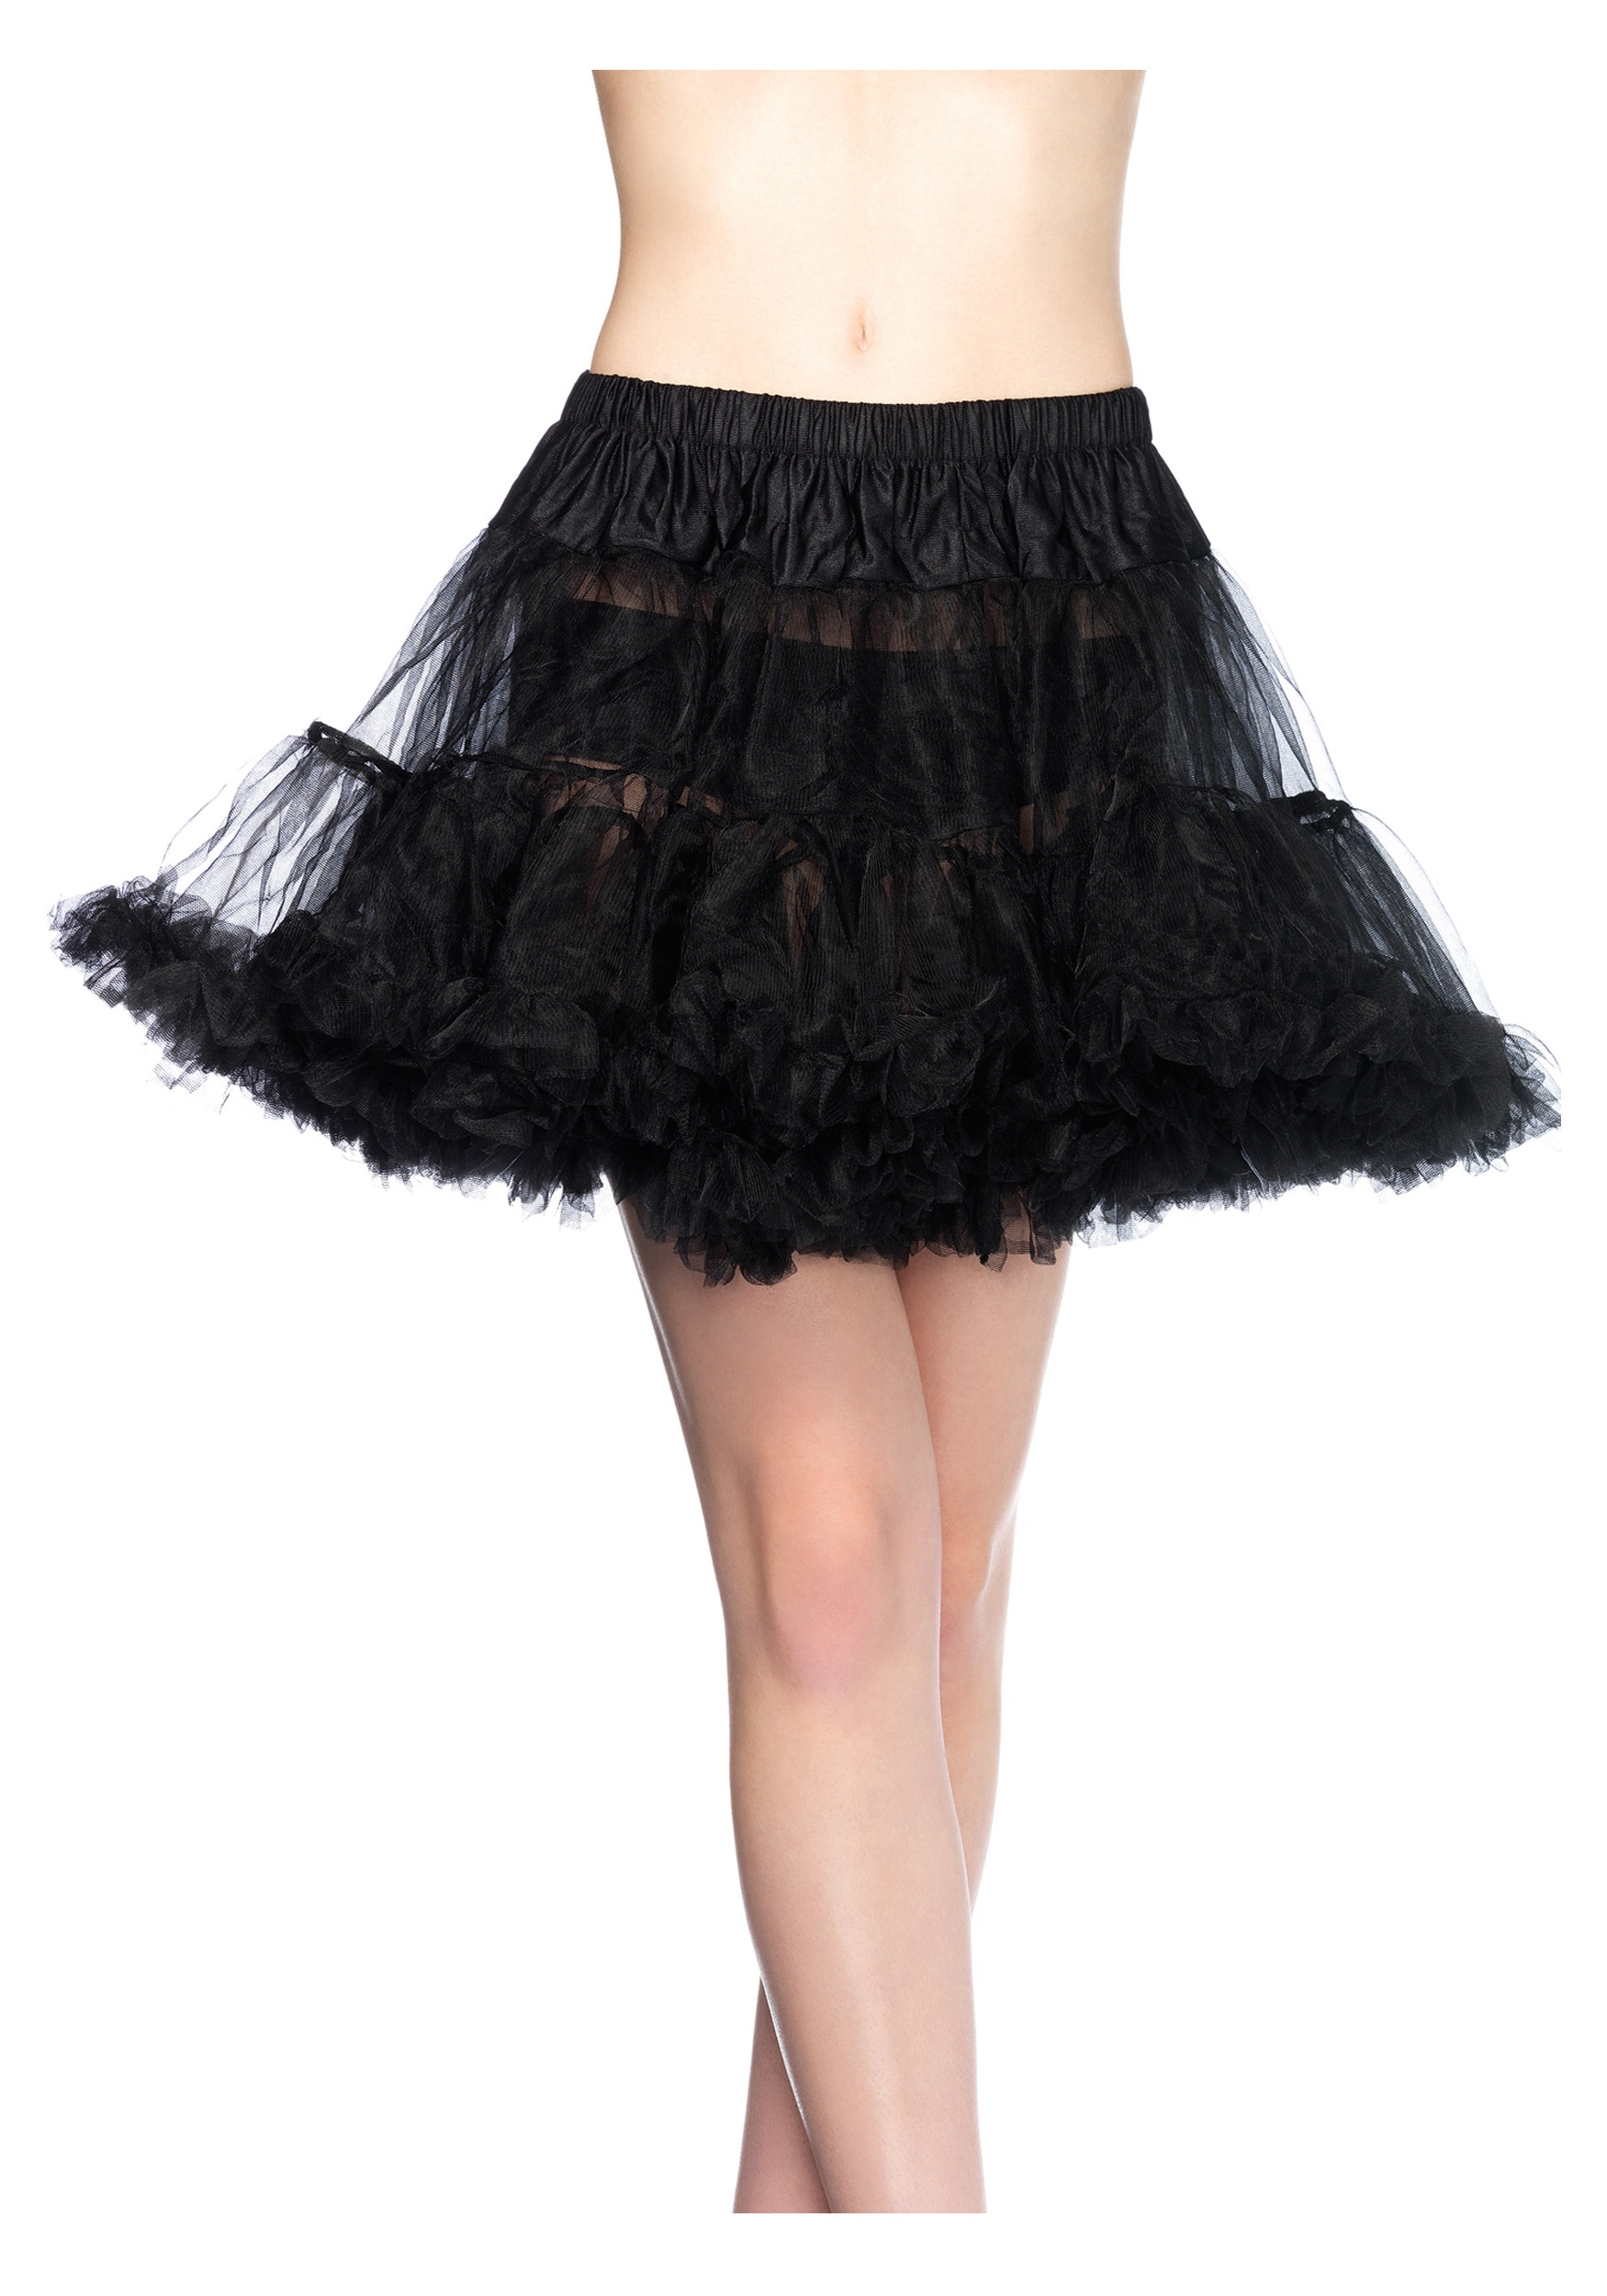 Find great deals on eBay for tulle underskirt. Shop with confidence.